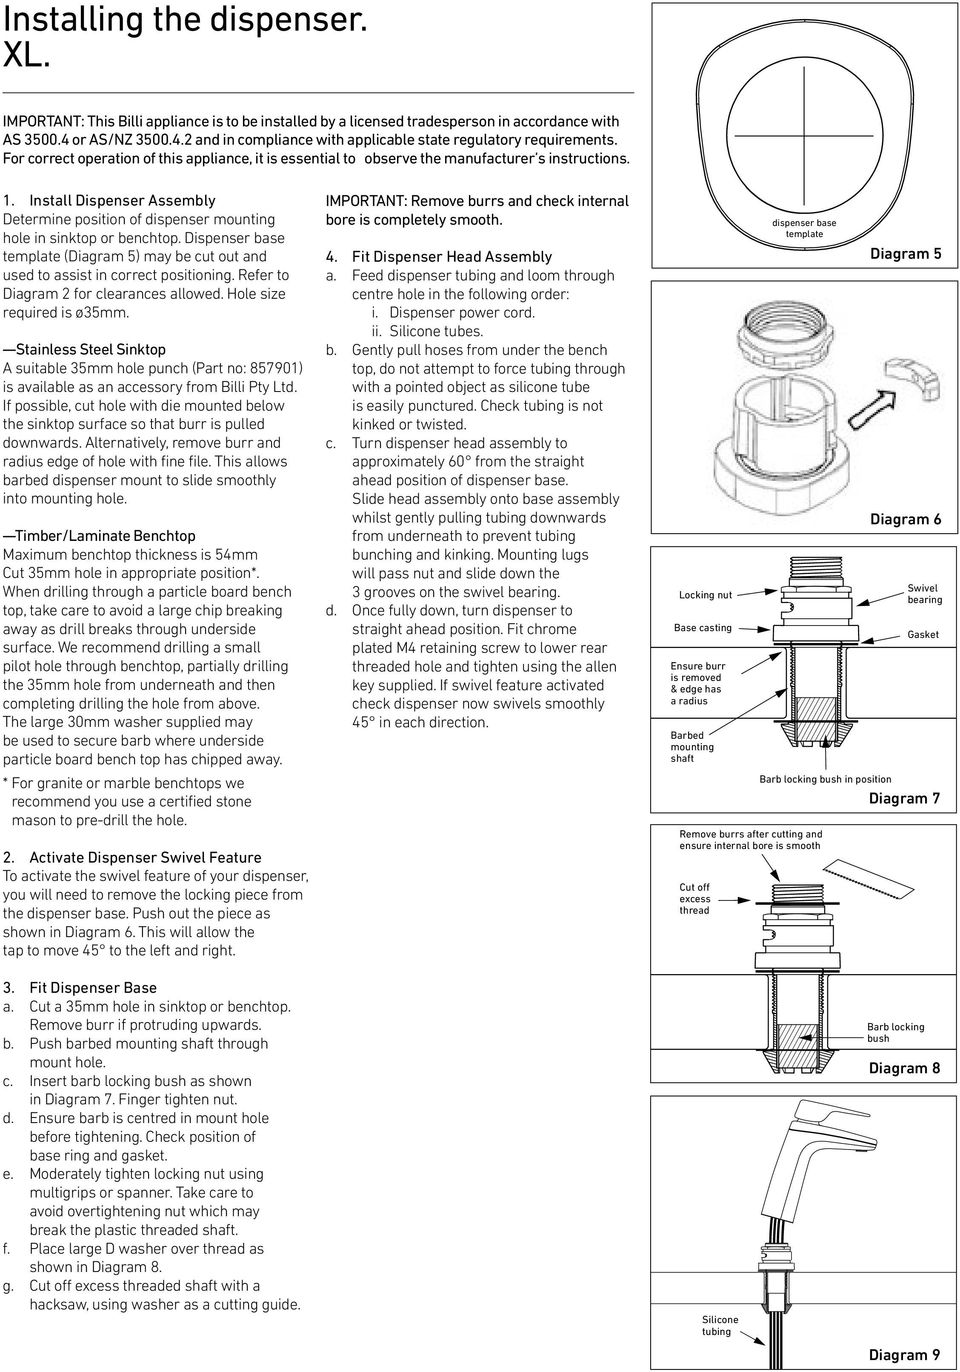 Installation Guide Billi Eco Sparkling Tap Option Xl Pdf In Diagram 7 Below 6 Layout For Roof Level Install Dispenser Assembly Determine Position Of Mounting Hole Sinktop Or Benchtop Base